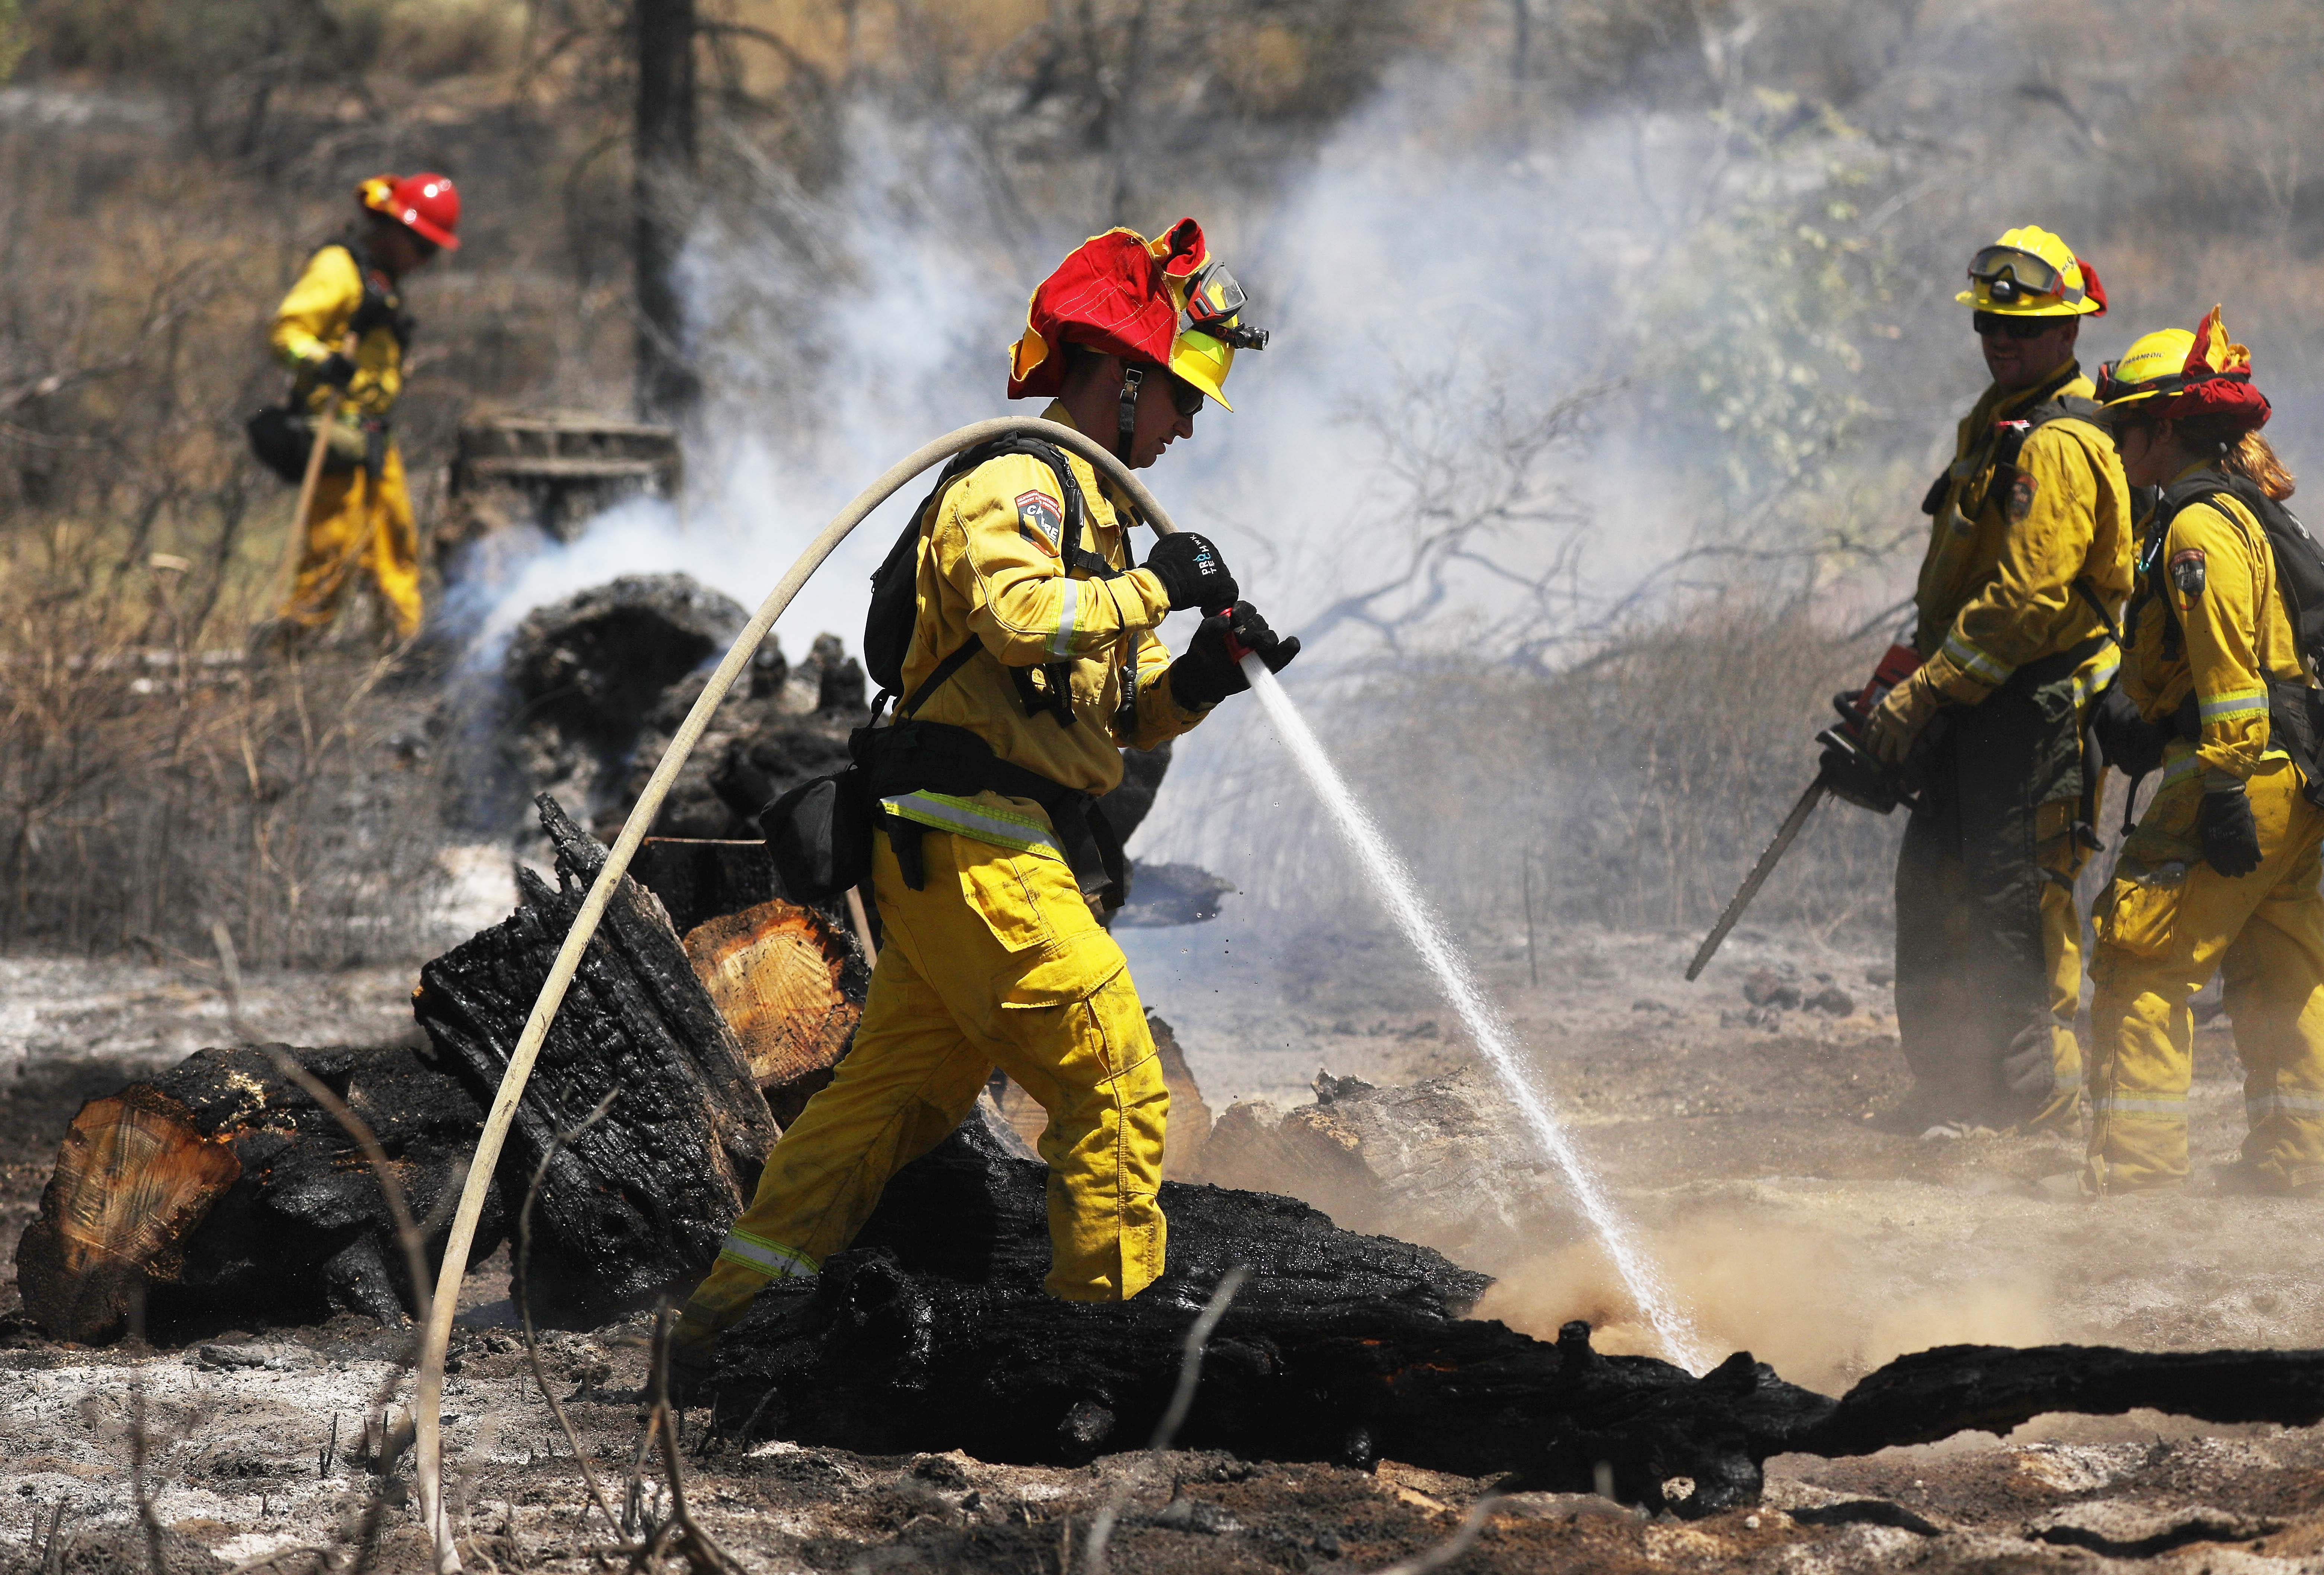 Firefighters work as the Cranston Fire burns in San Bernardino National Forest near Idyllwild, Calif., on July 26, 2018.